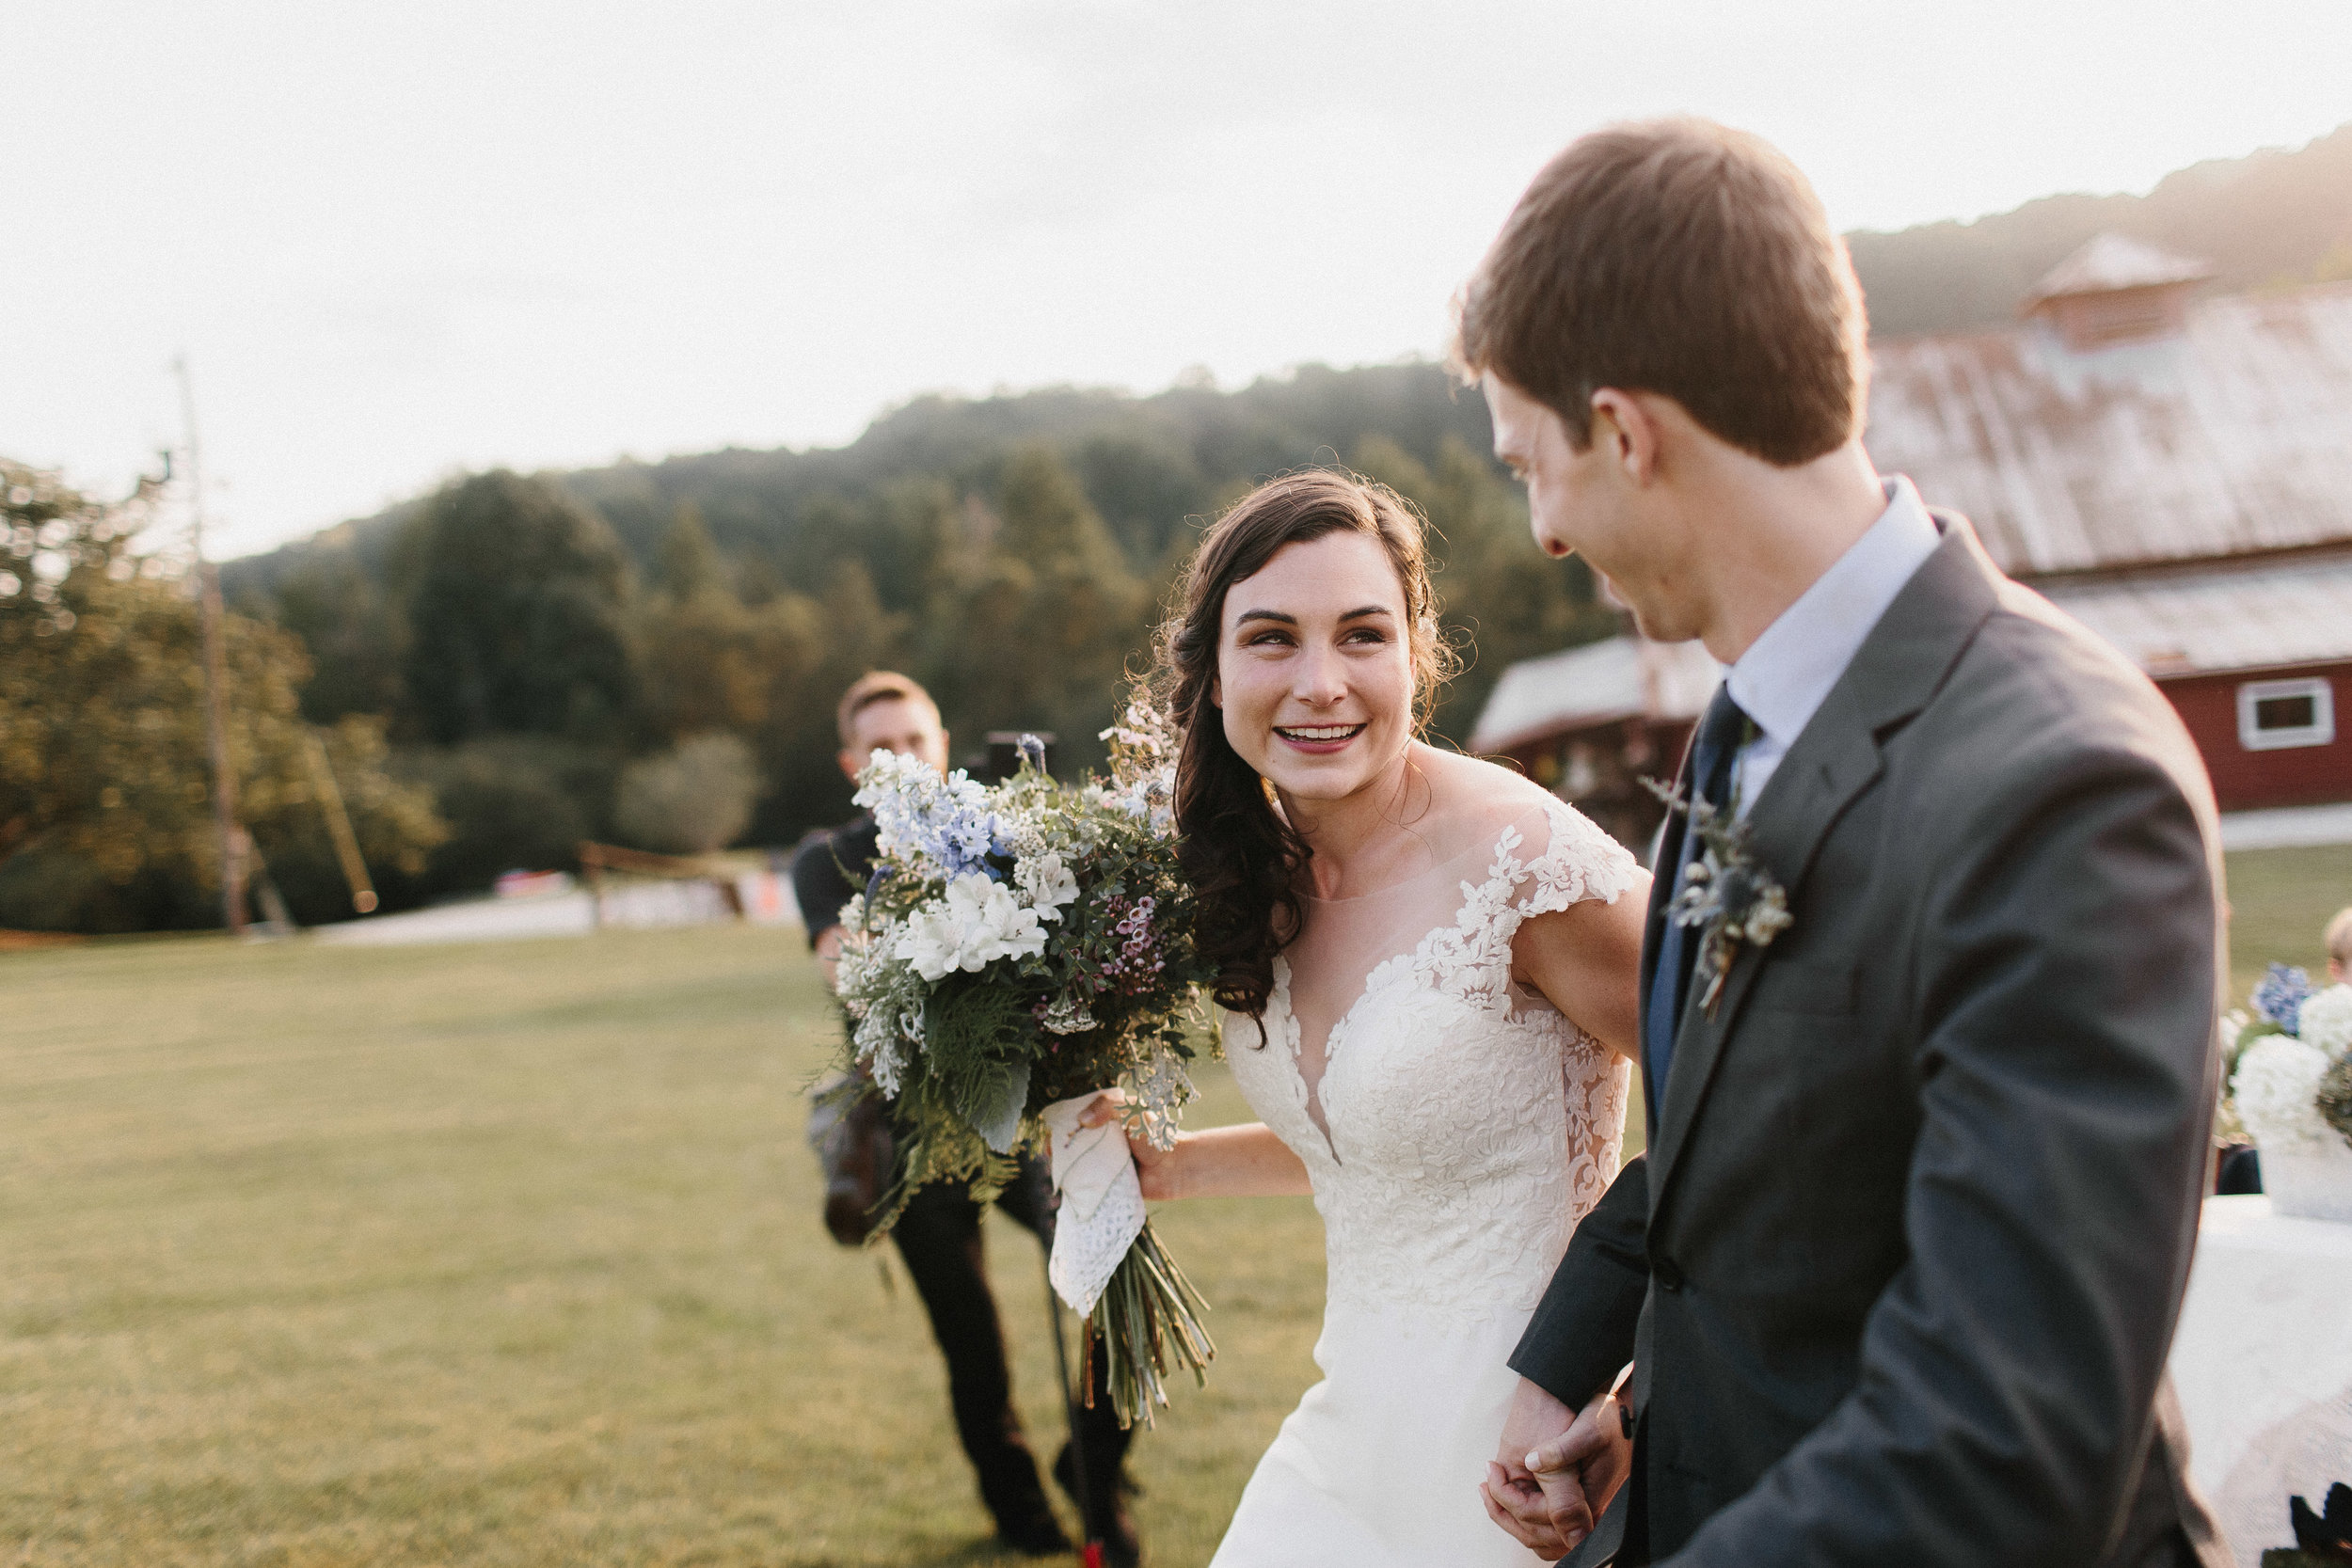 cleveland_georgia_mountain_laurel_farm_natural_classic_timeless_documentary_candid_wedding_emotional_photojournalism_river_west_1713.jpg